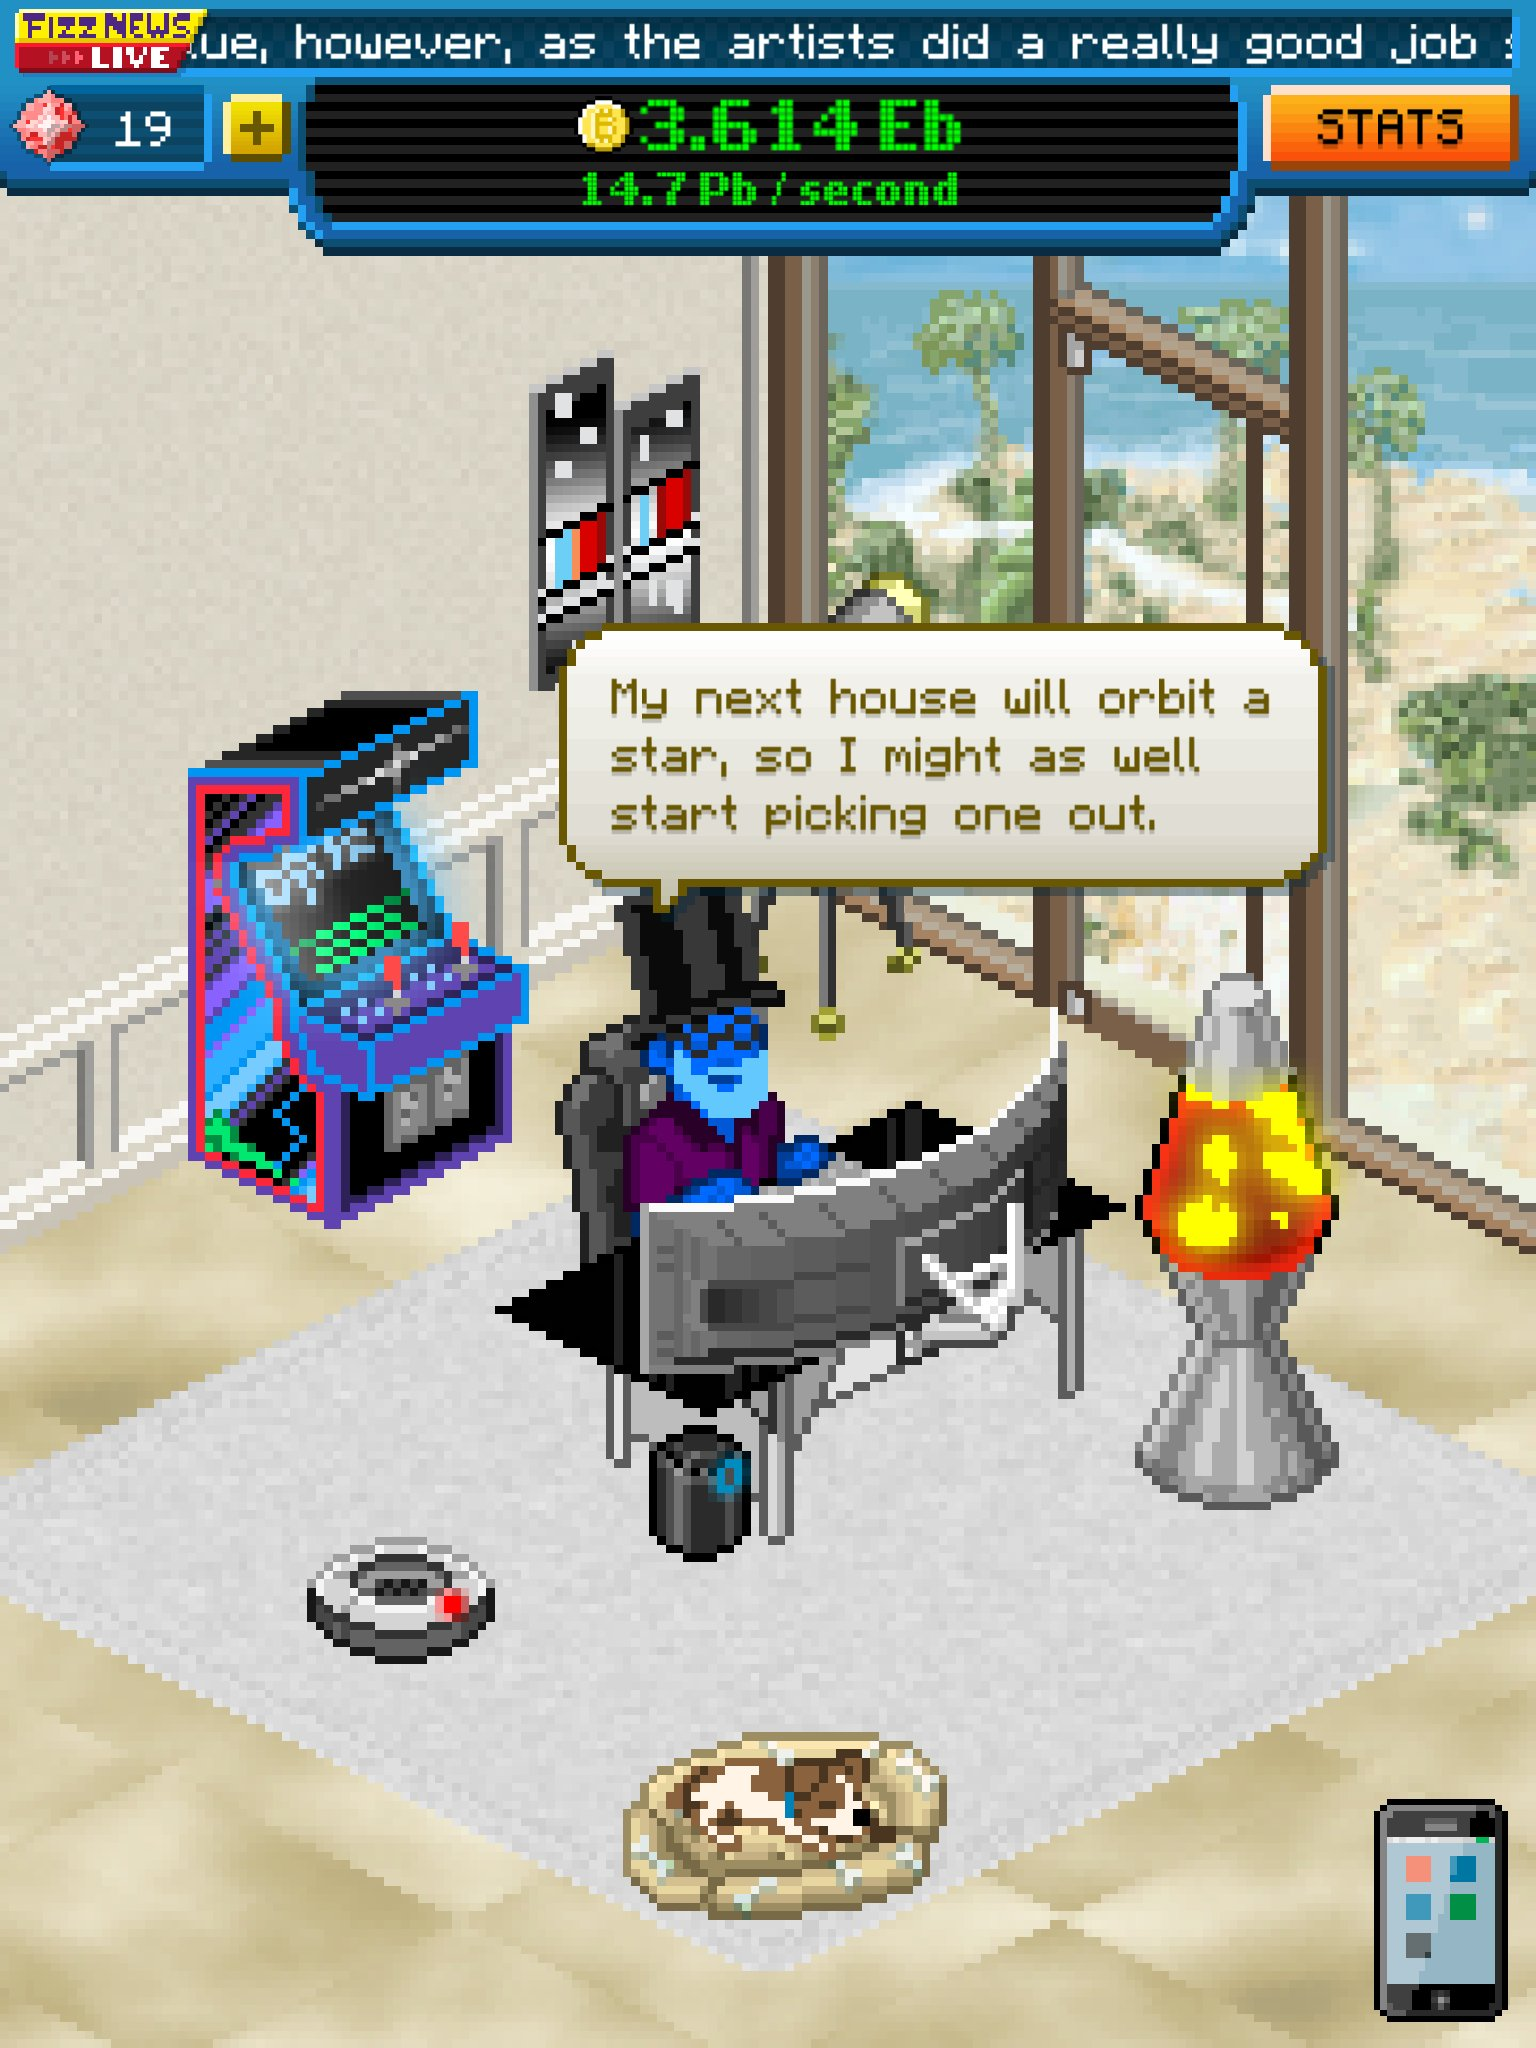 Bitcoin billionaire review im ashamed to love this game bitcoin billionaire 4 ccuart Gallery